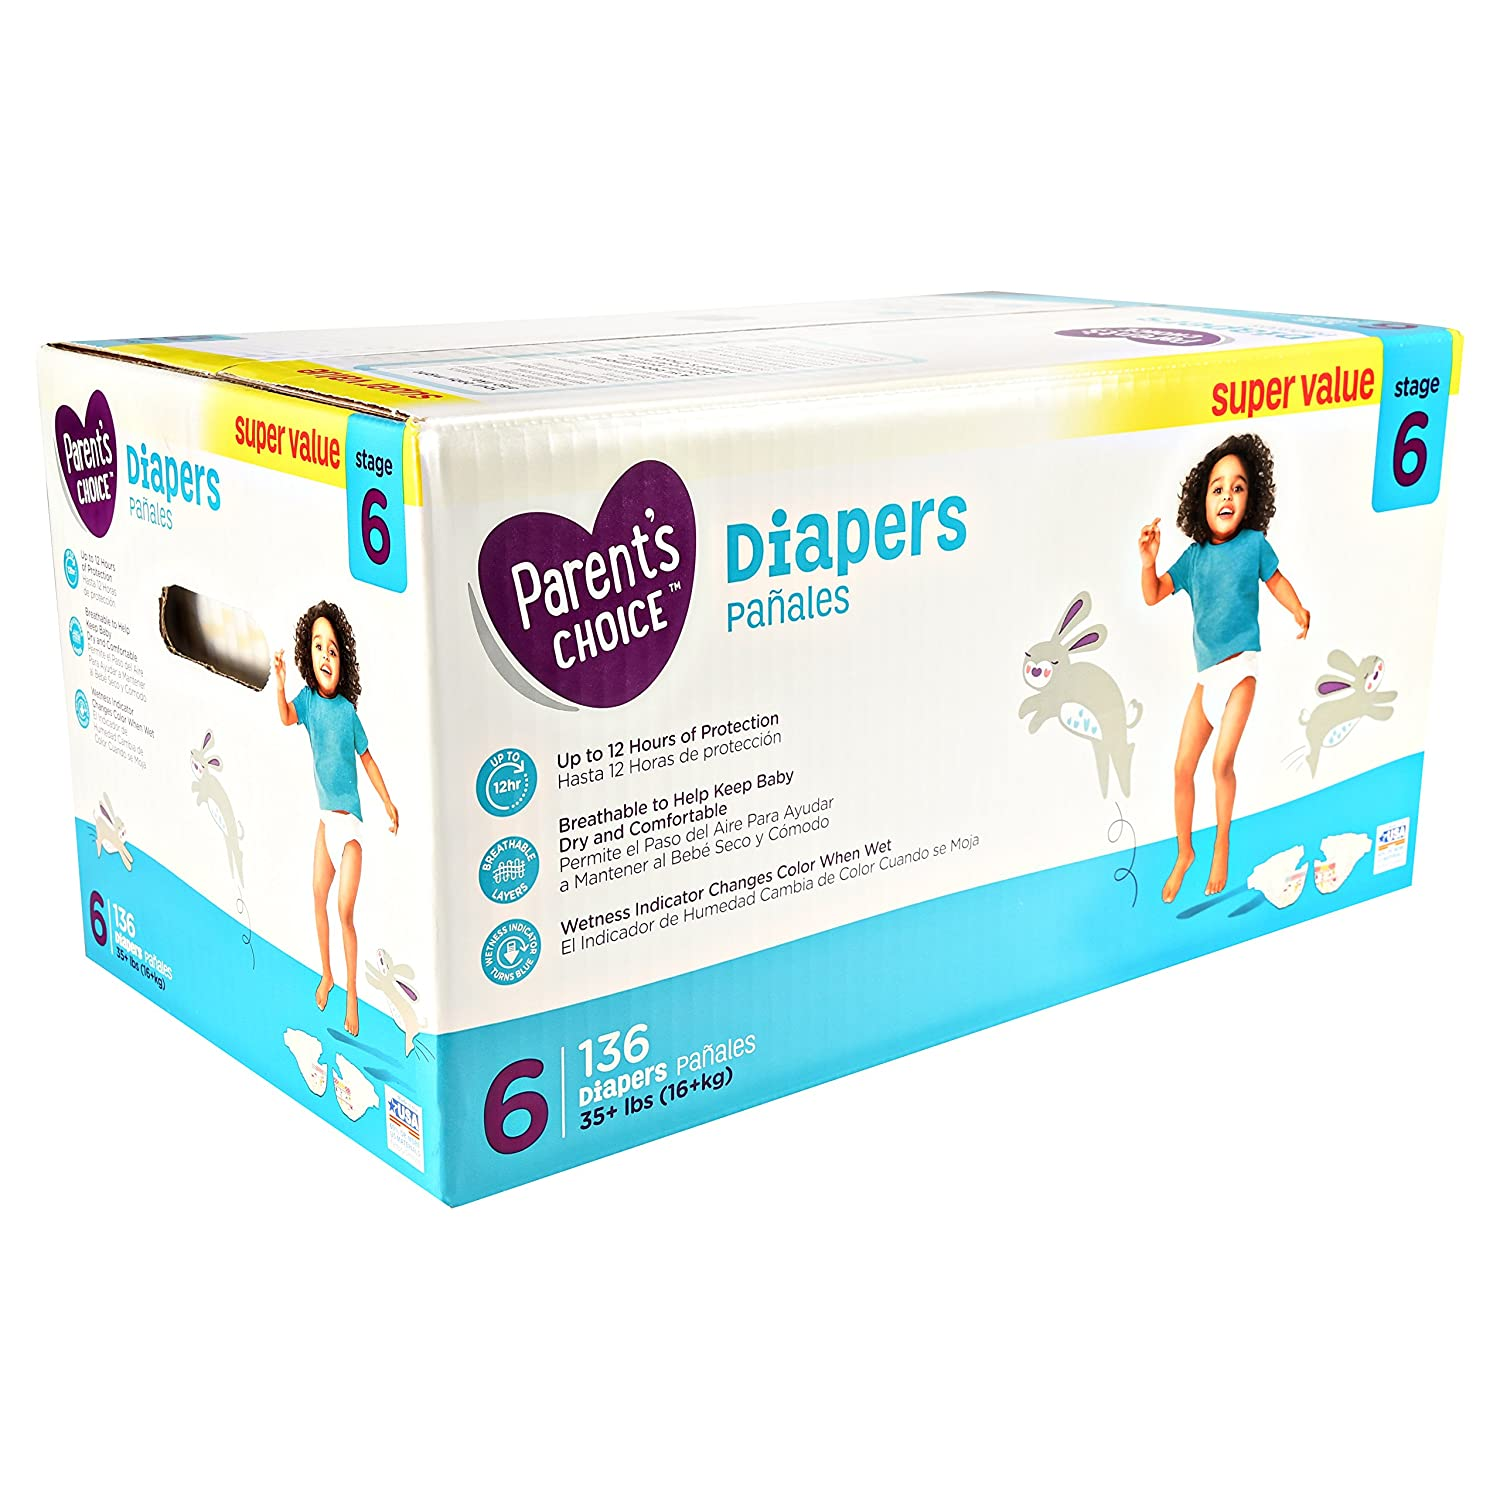 Amazon.com: Parents Choice Super Value Box Diapers, size 6, 136 Diapers by Parents Choice: Health & Personal Care